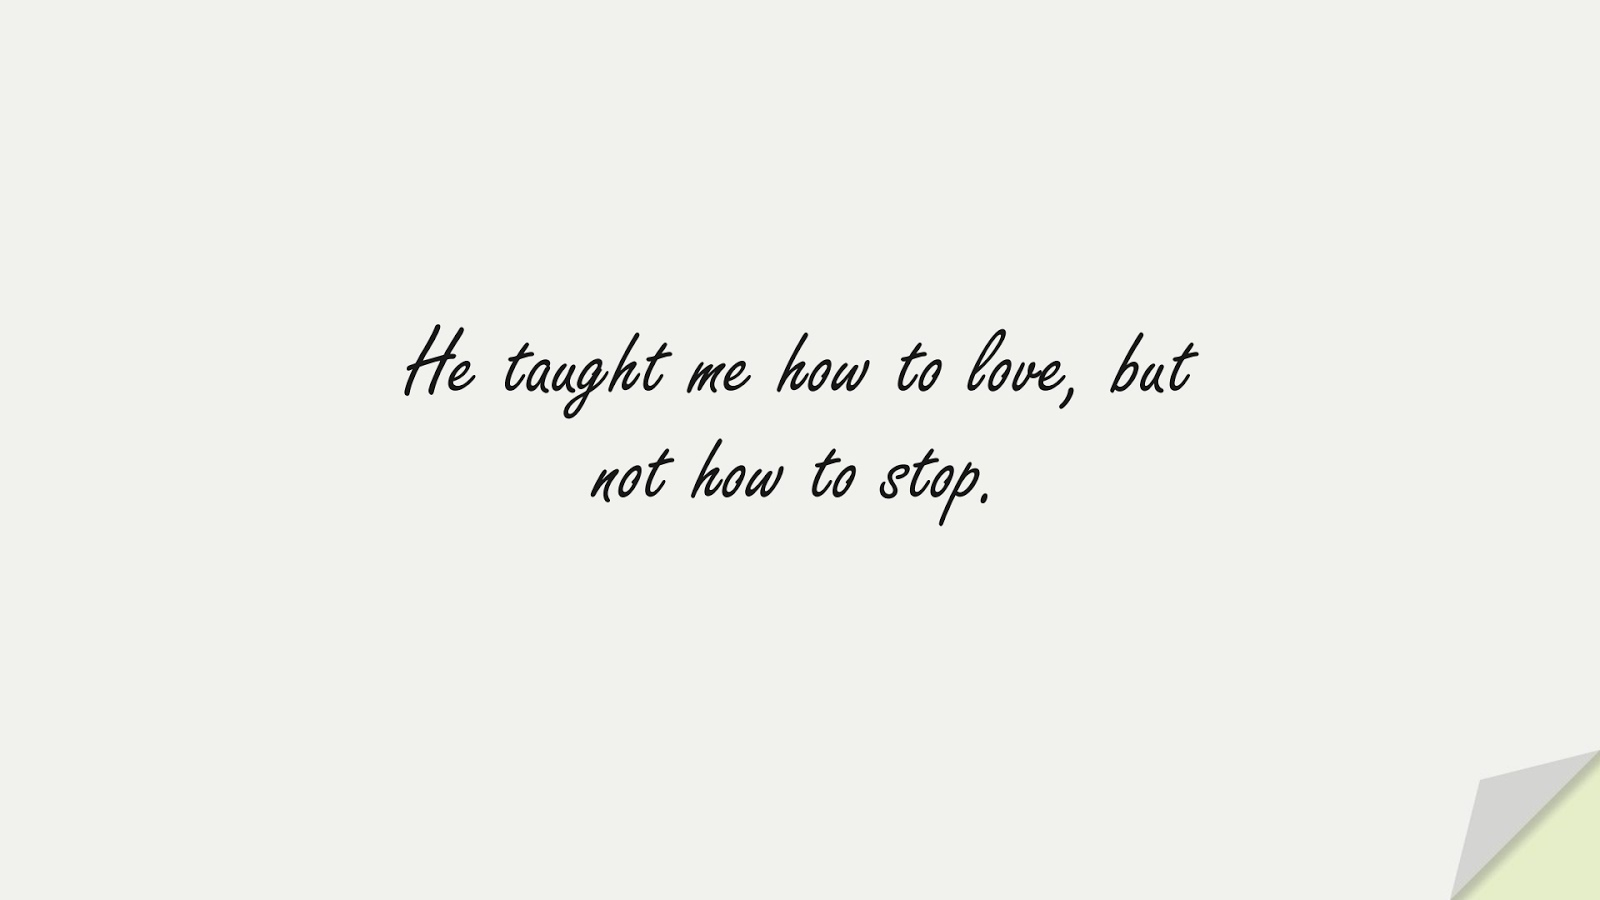 He taught me how to love, but not how to stop.FALSE